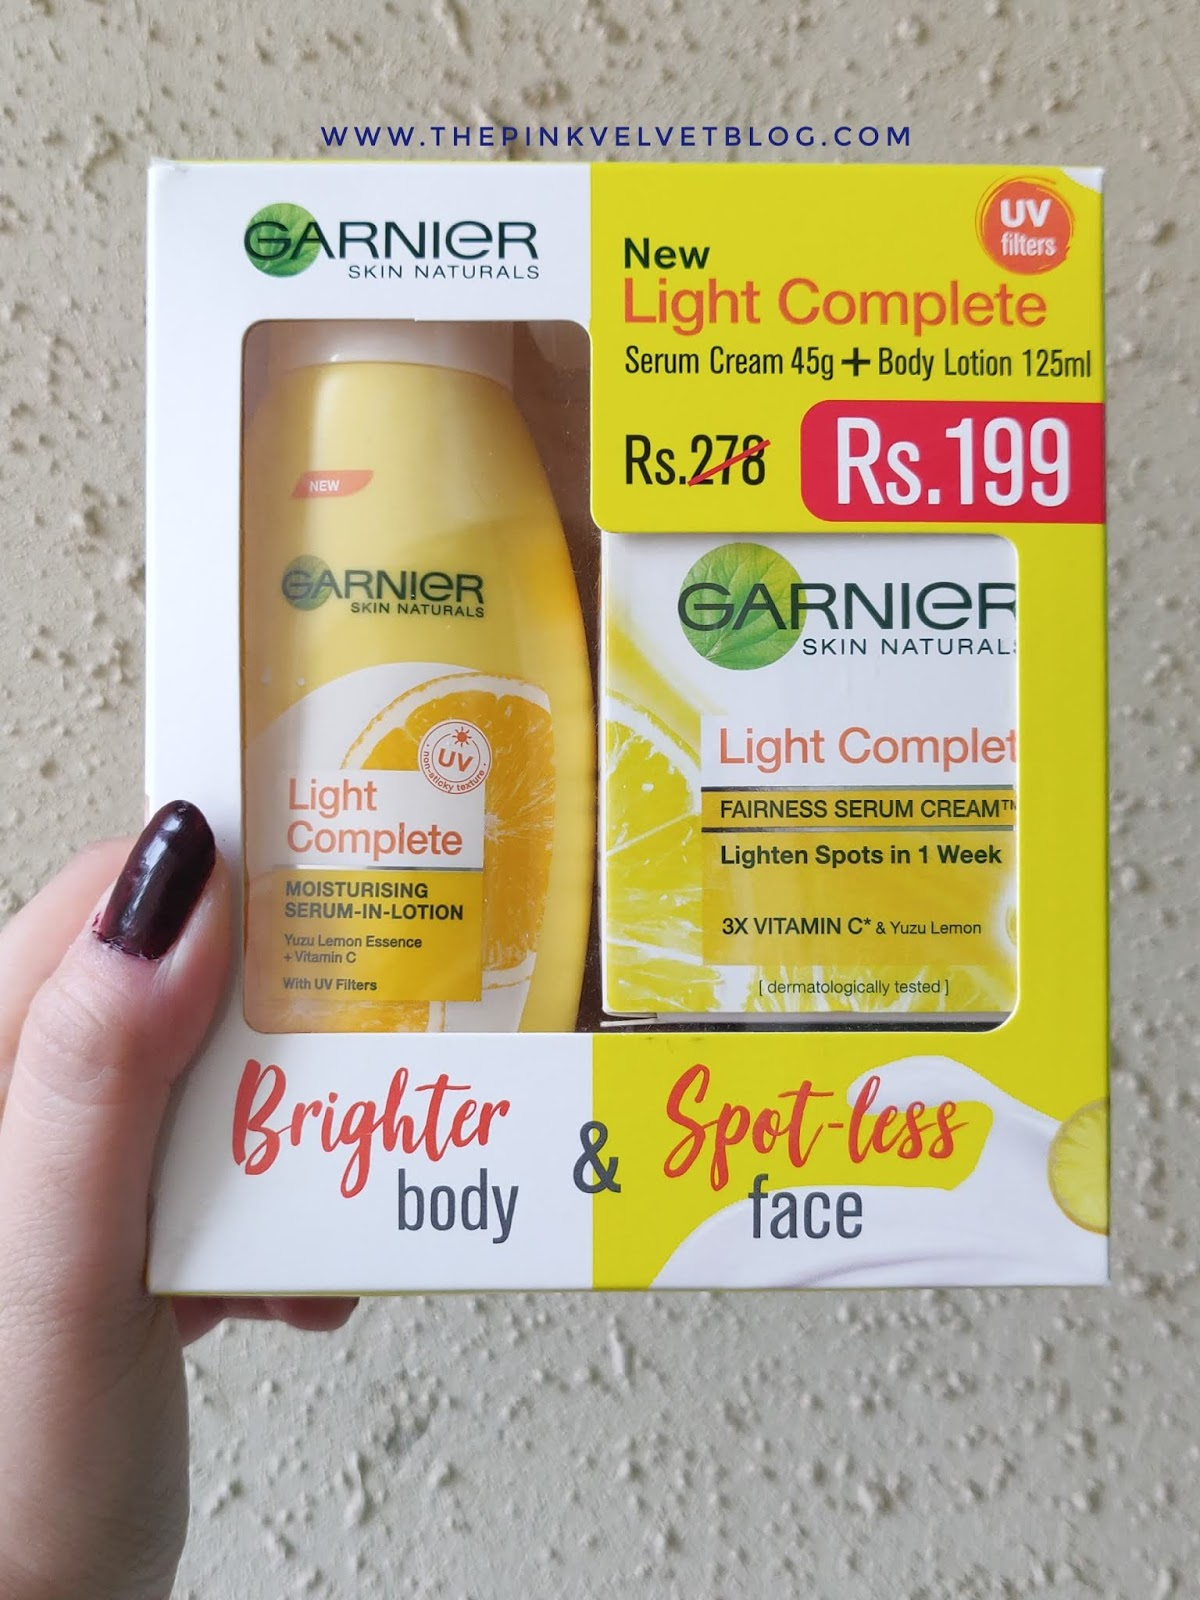 Garnier Light Complete Serum Cream and Moisturizing Lotion - Review